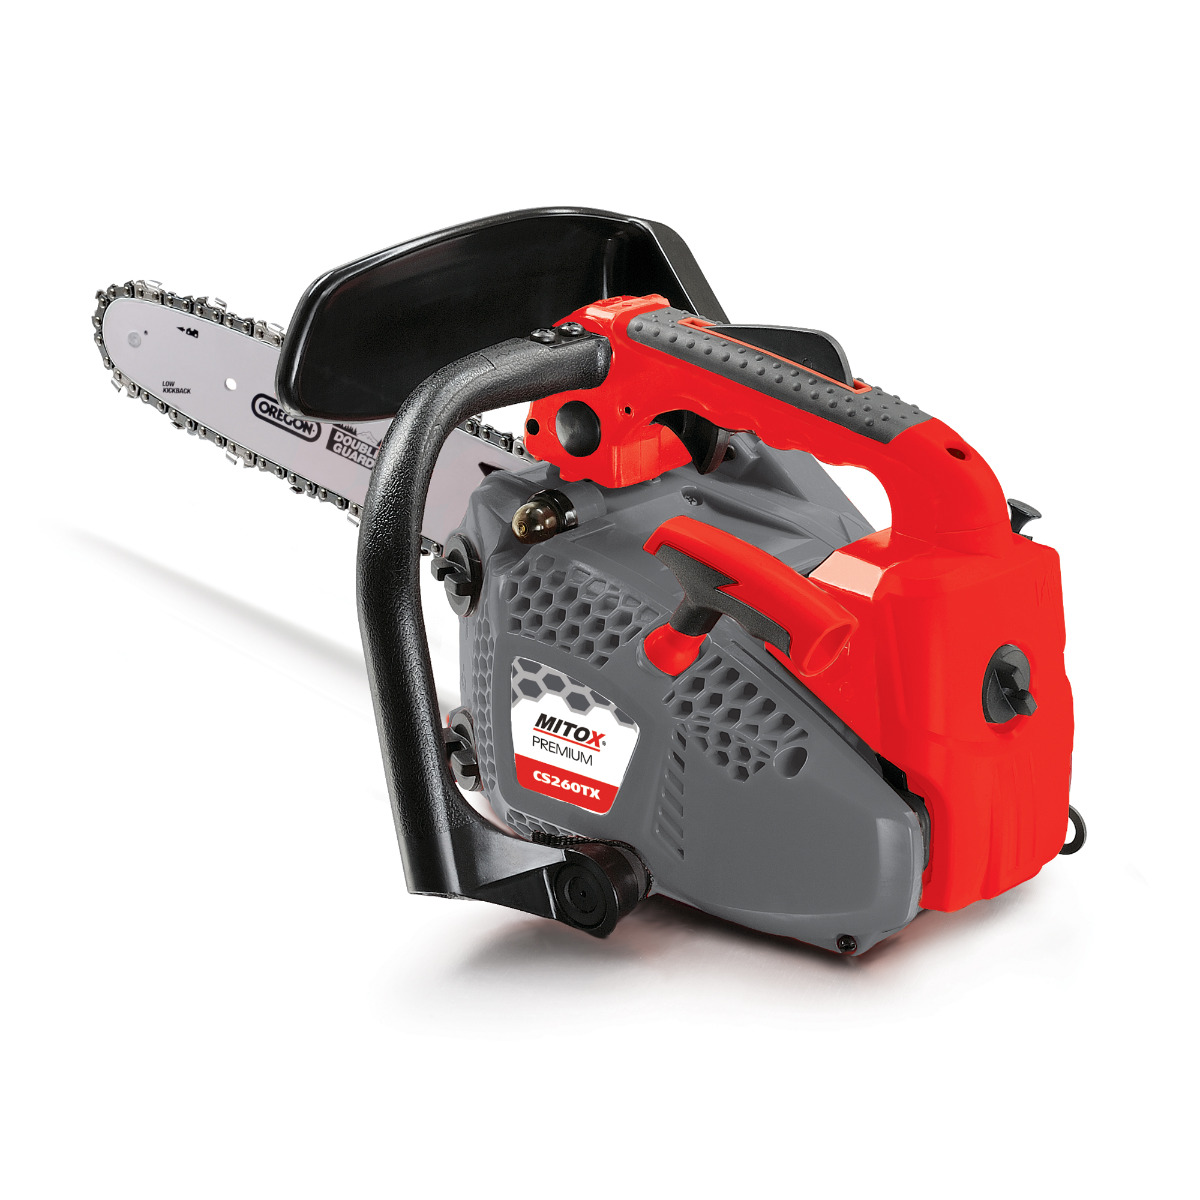 Mitox CS260TX Top Handle Chainsaw